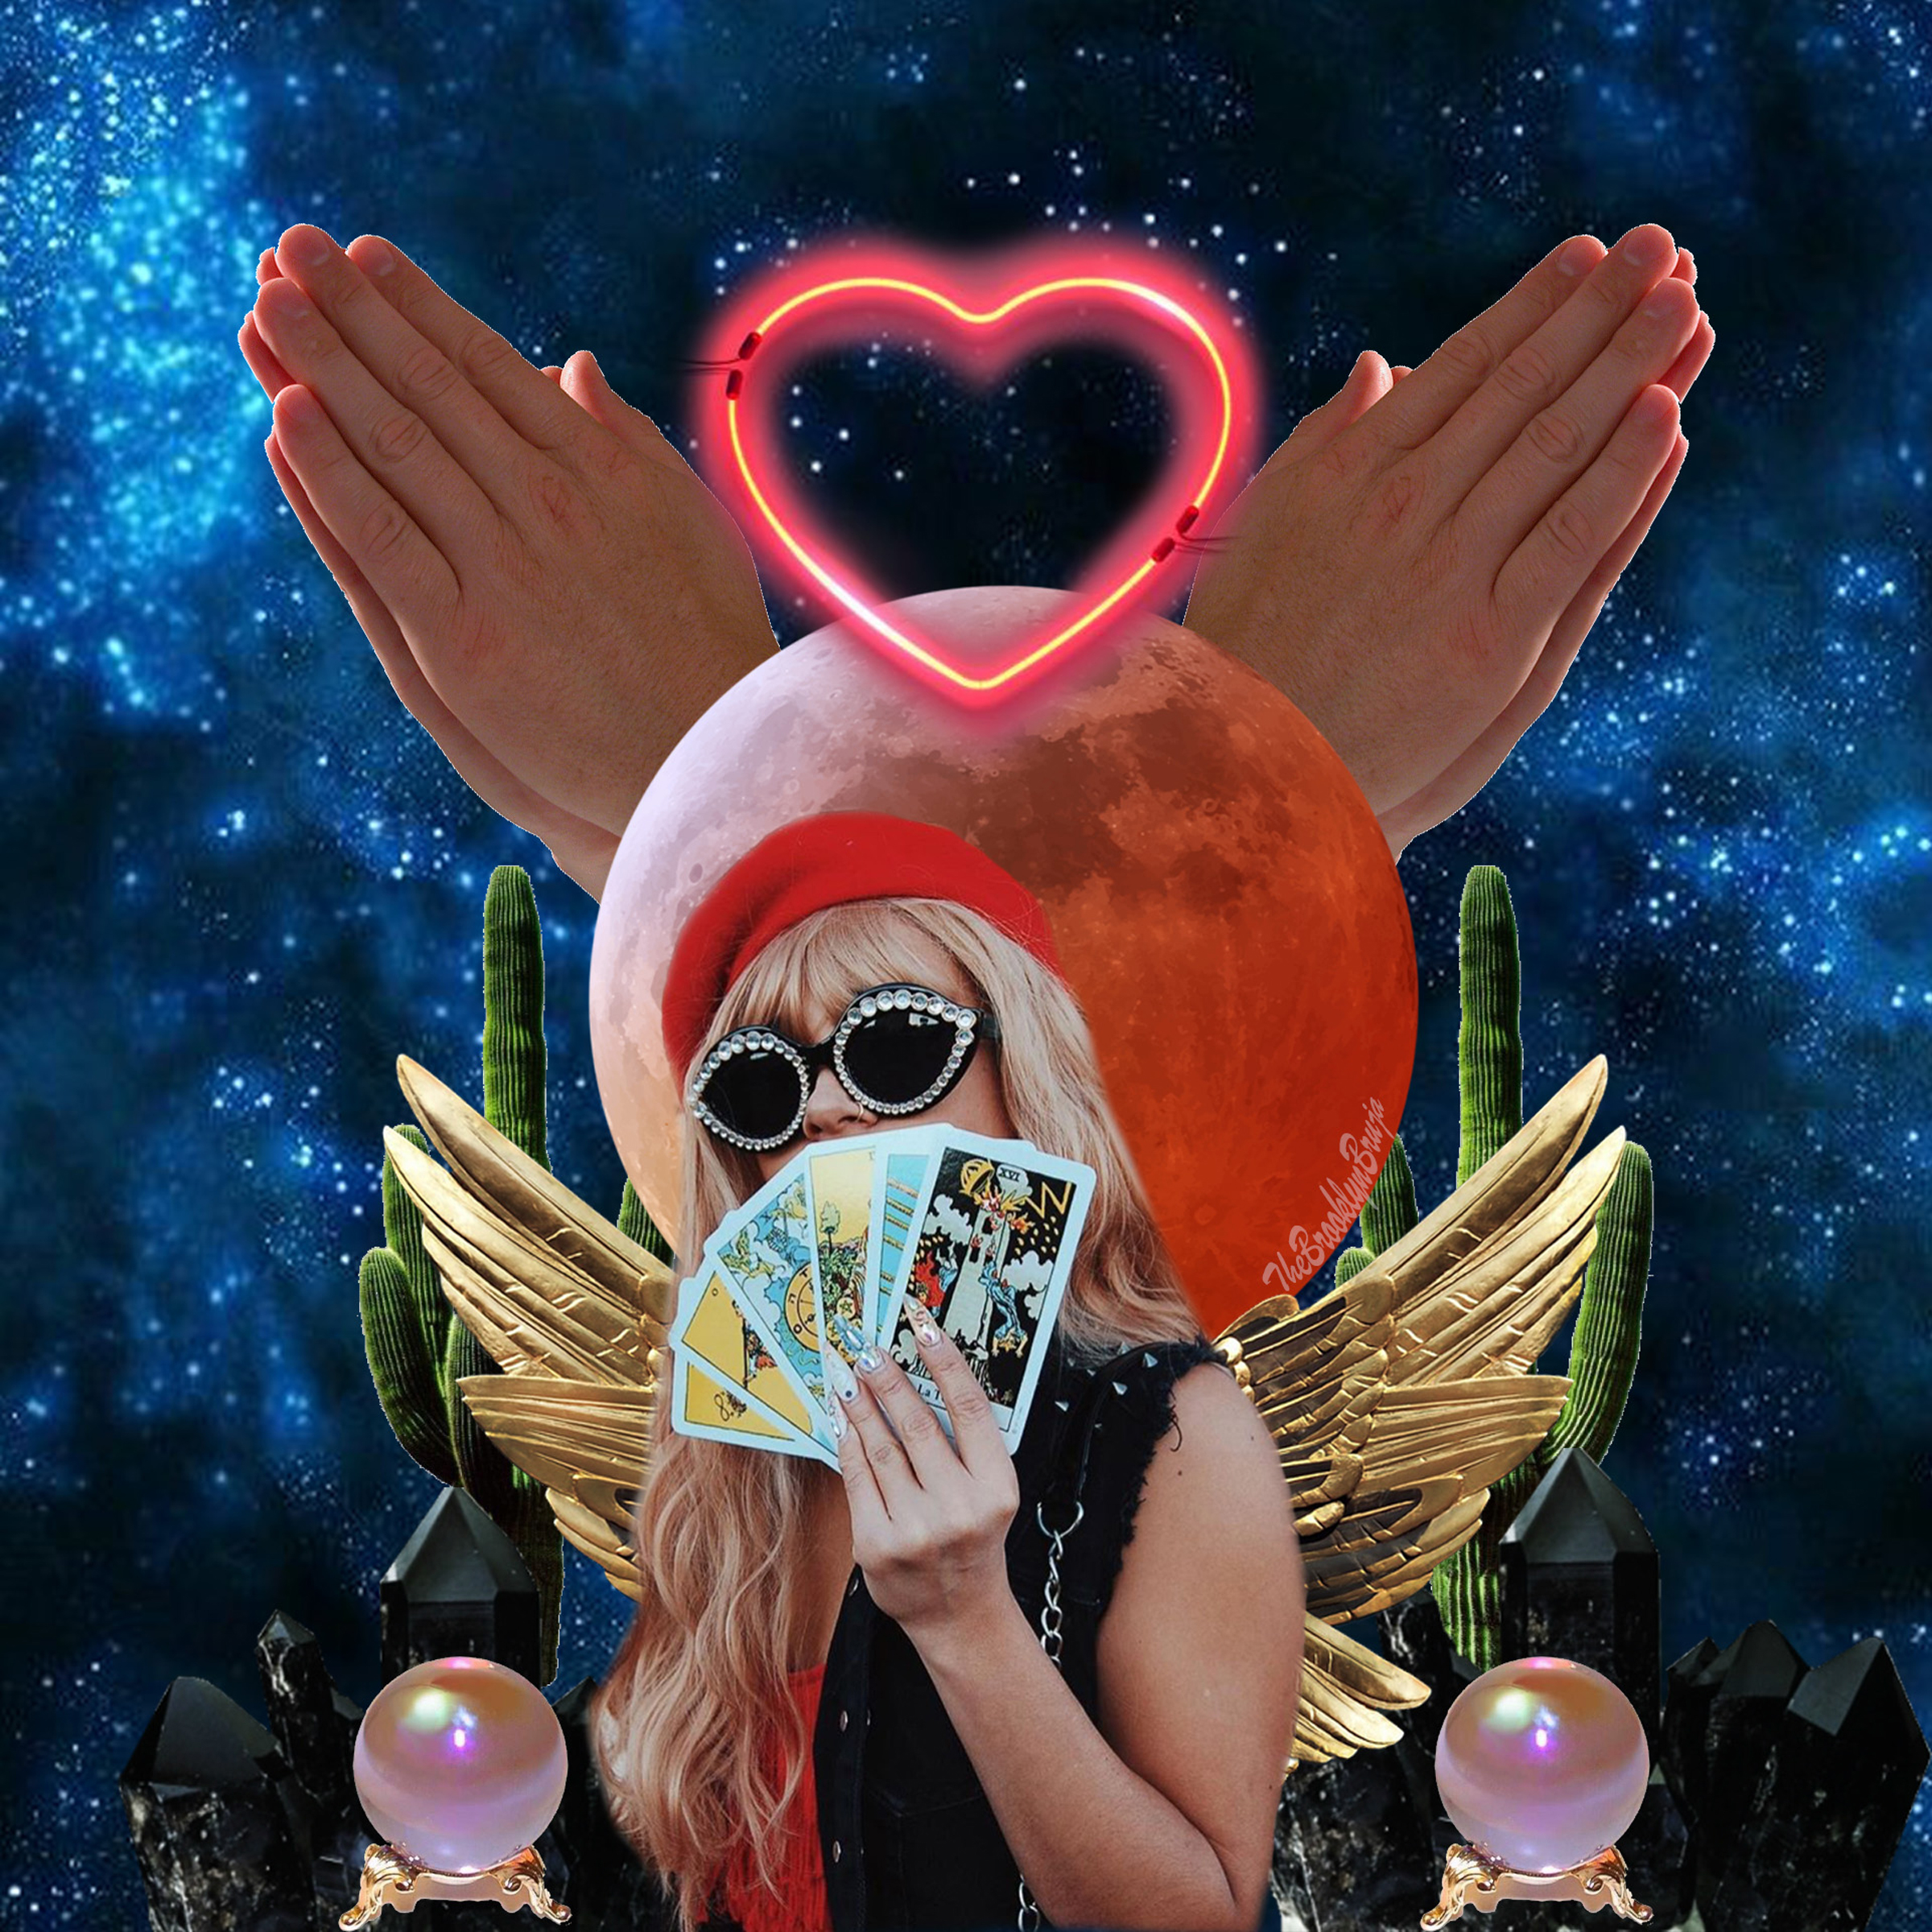 collage image of astrology-related elements with bruja, Valeria Ruelas, in the center wearing sunglasses and holding a fan of tarot cards in front of her face